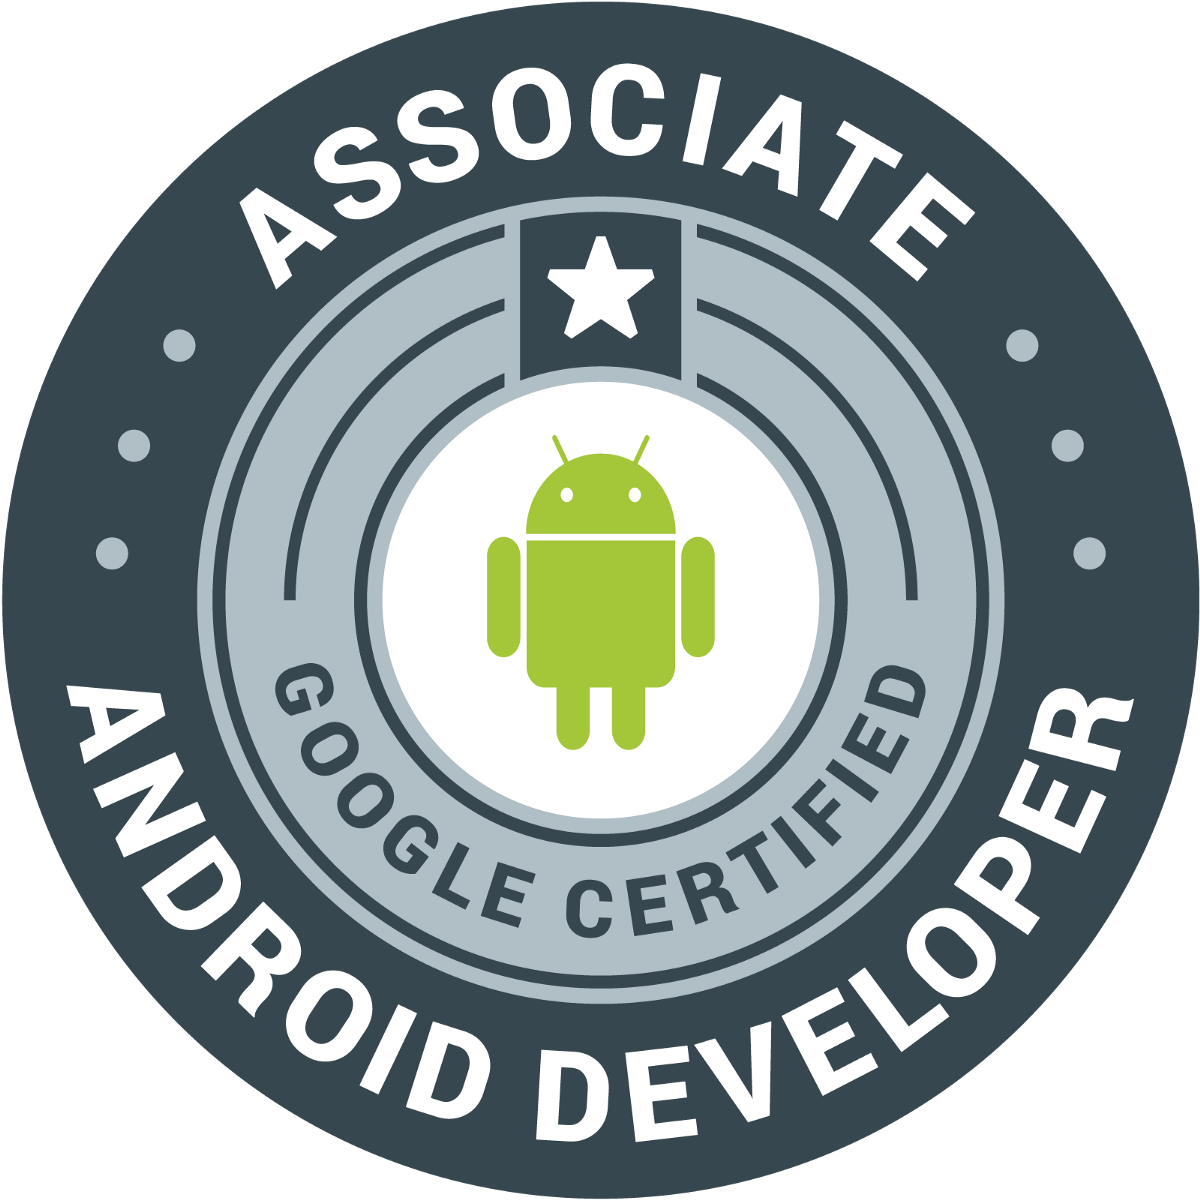 Associate Android Developer Certification Exam Androidpub